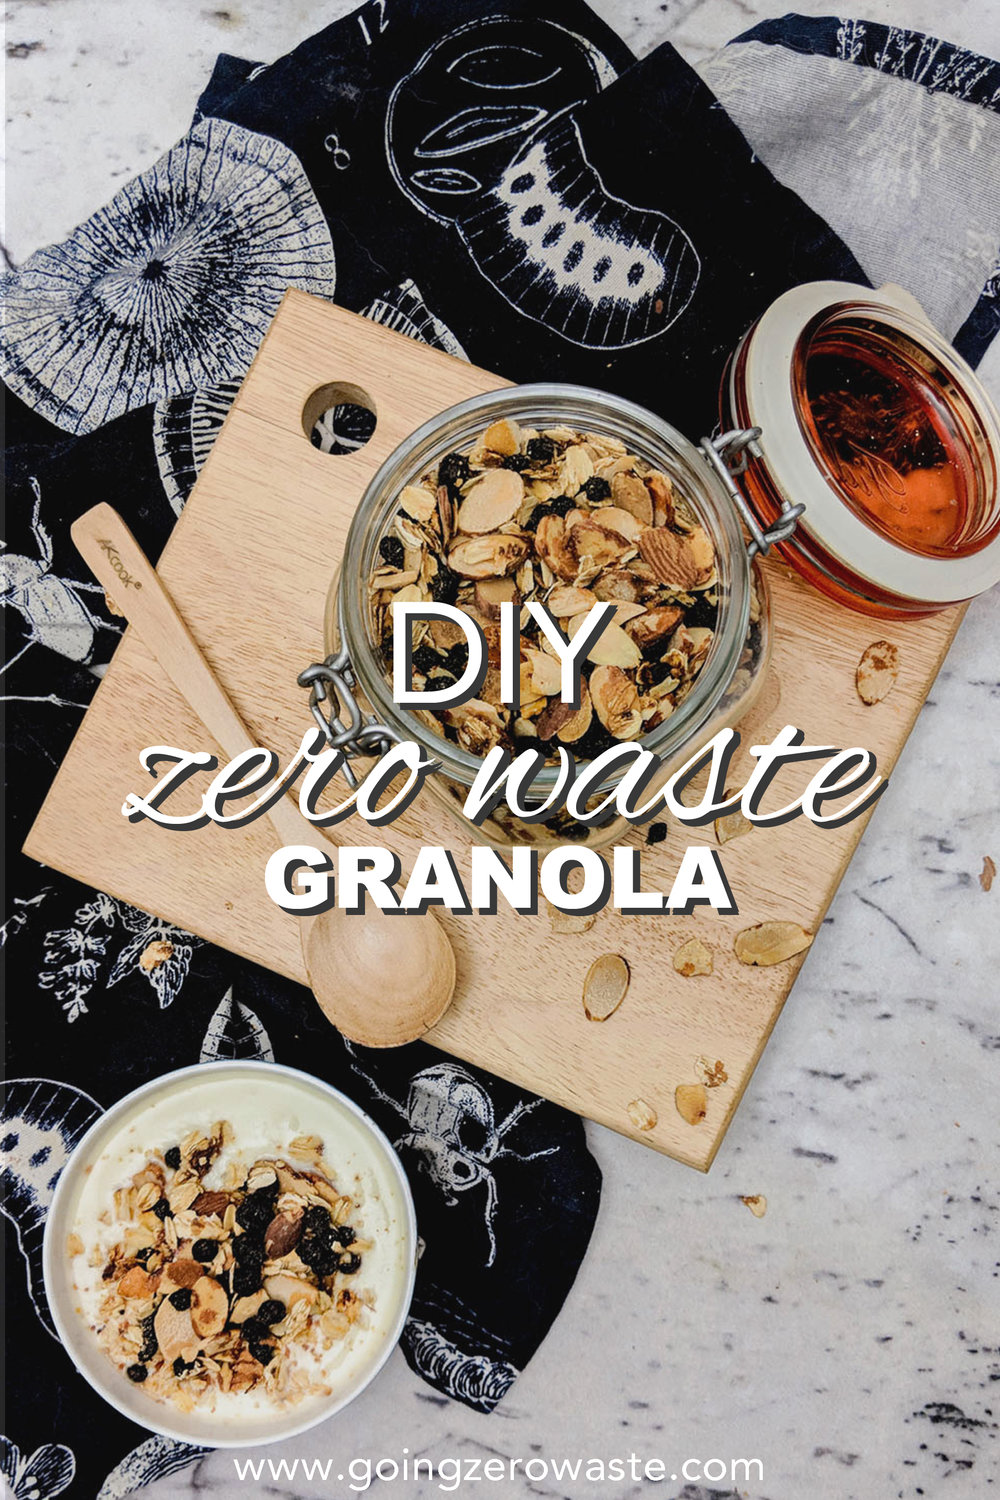 DIY, zero waste granola from www.goingzerowaste.com